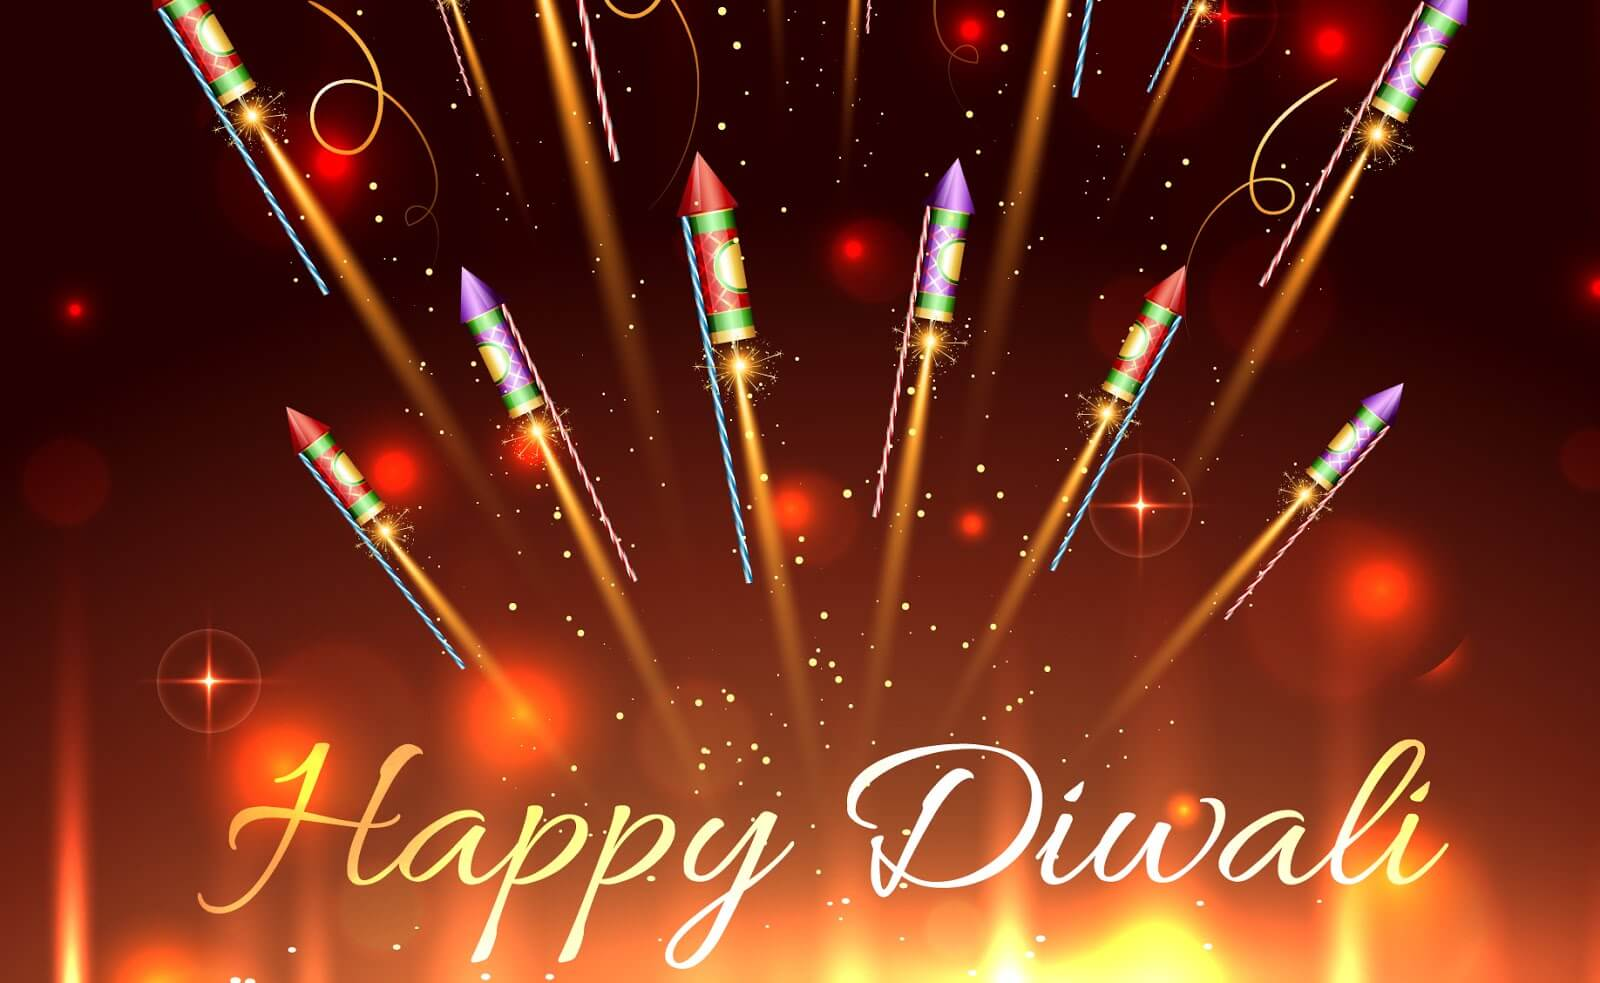 Happy Diwali Image with Crackers Rockets